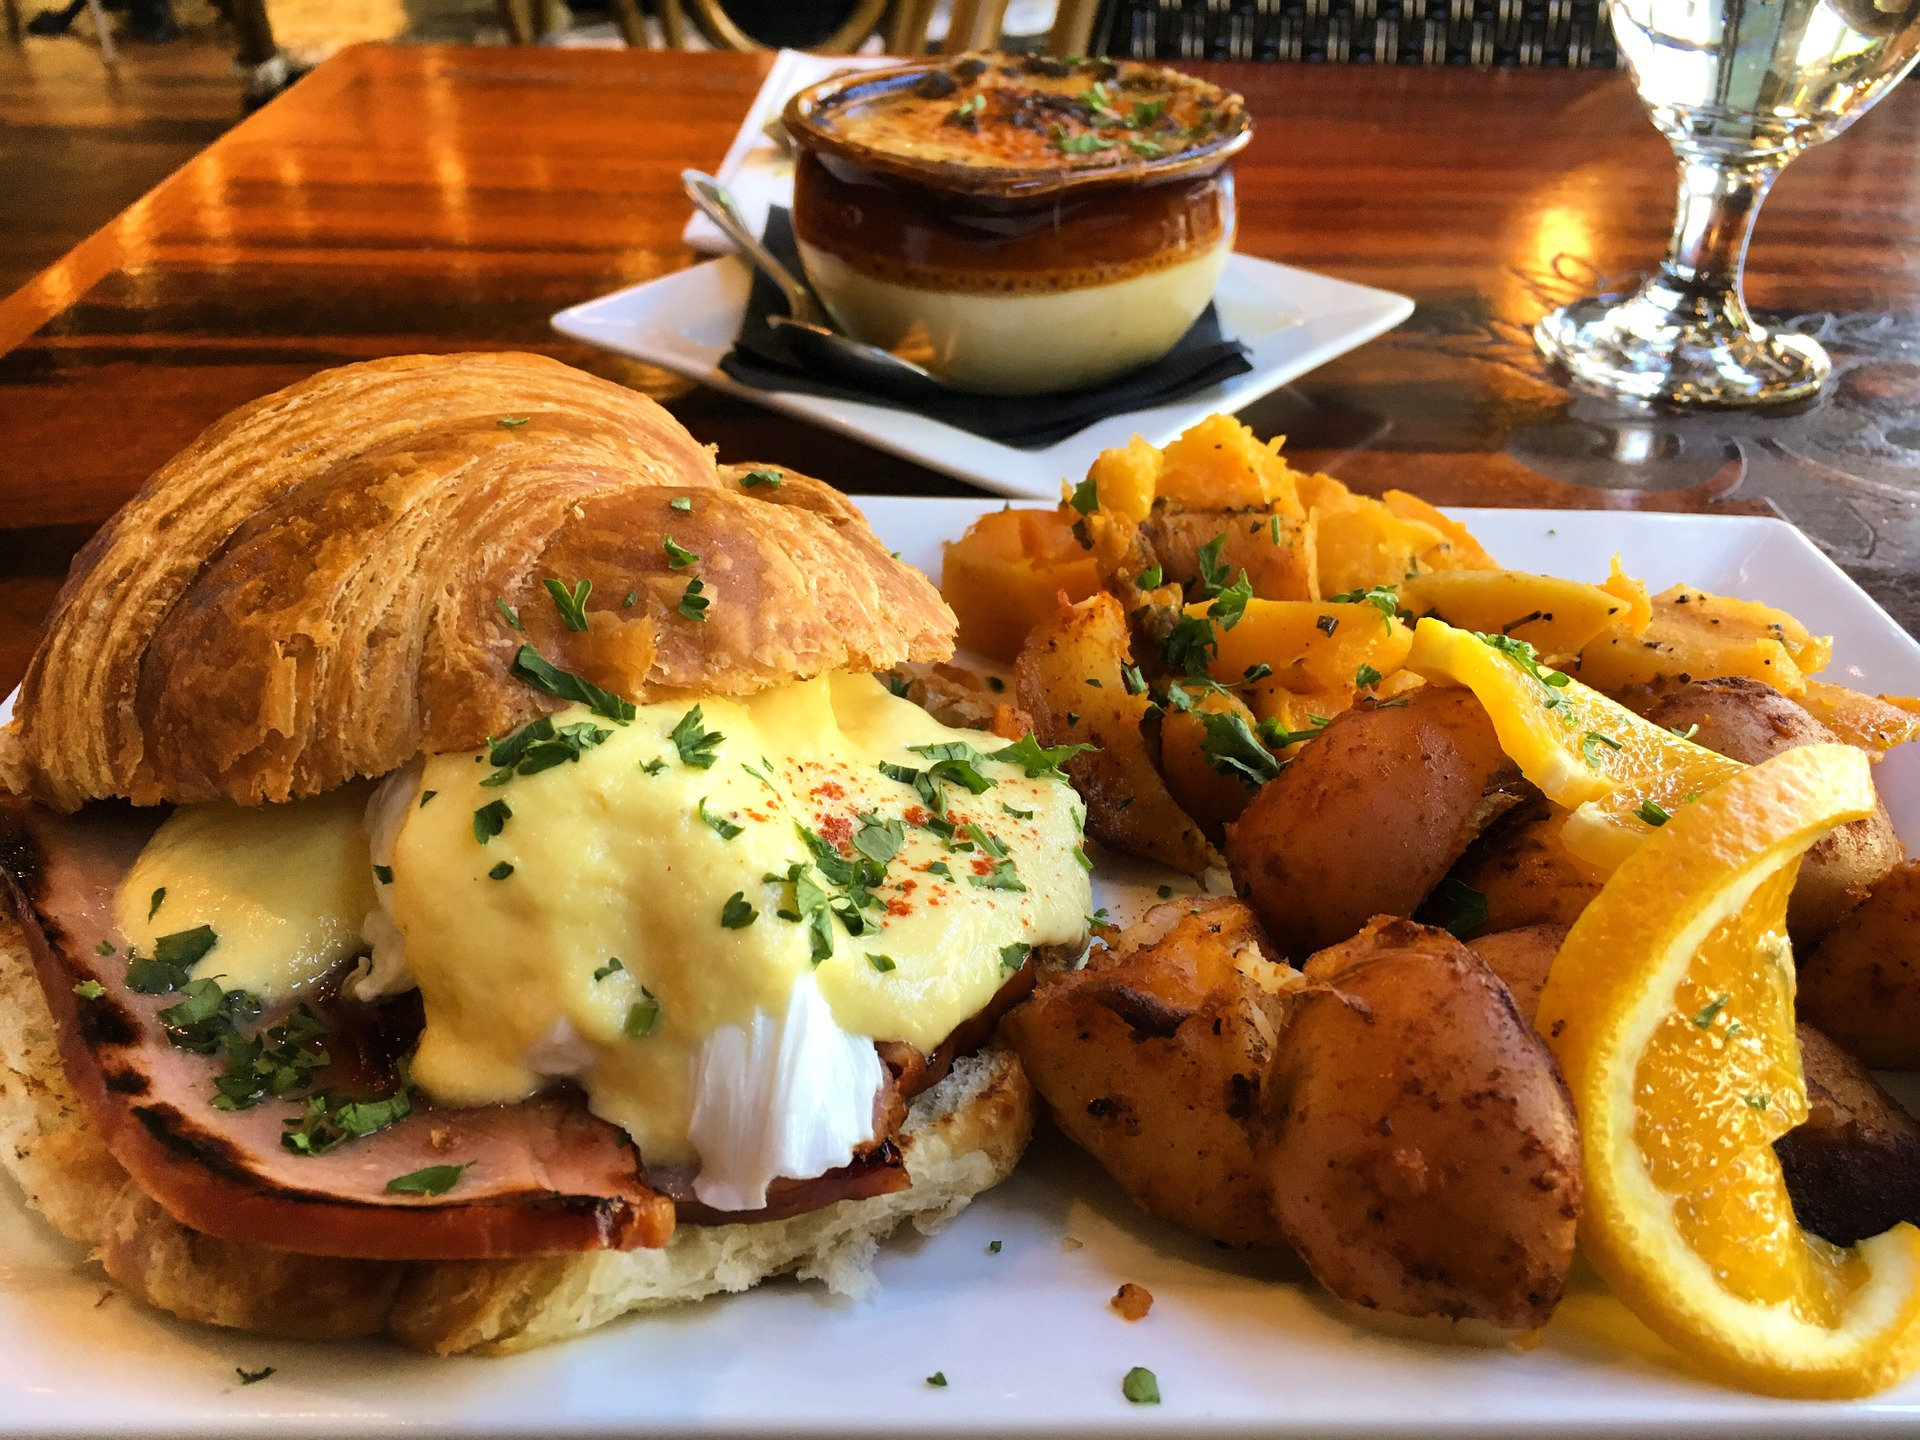 The 10 best breakfast and brunch spots in siox falls for A french cuisine